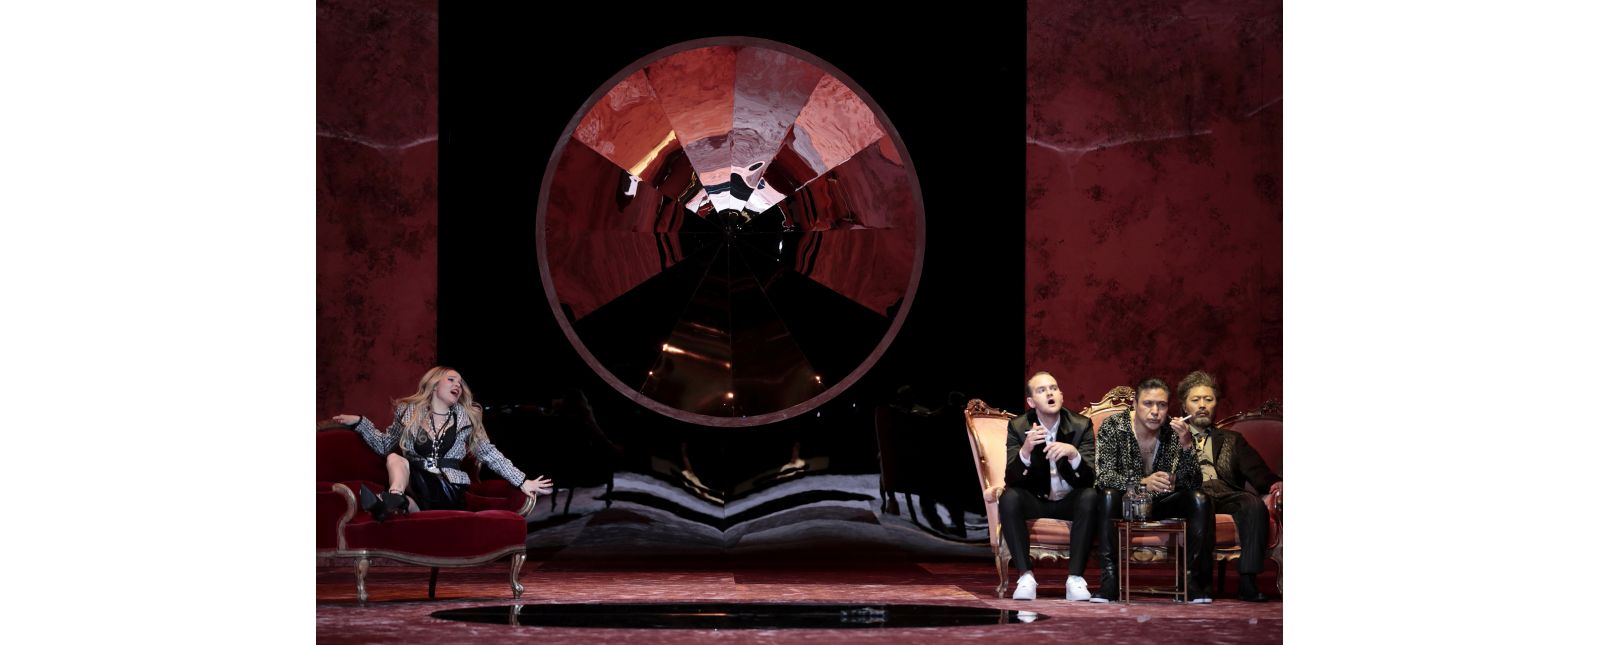 DON GIOVANNI // Inga Schäfer // Michael Borth // Juan Orozco // JinSeok Lee 2019 // Paul Leclaire